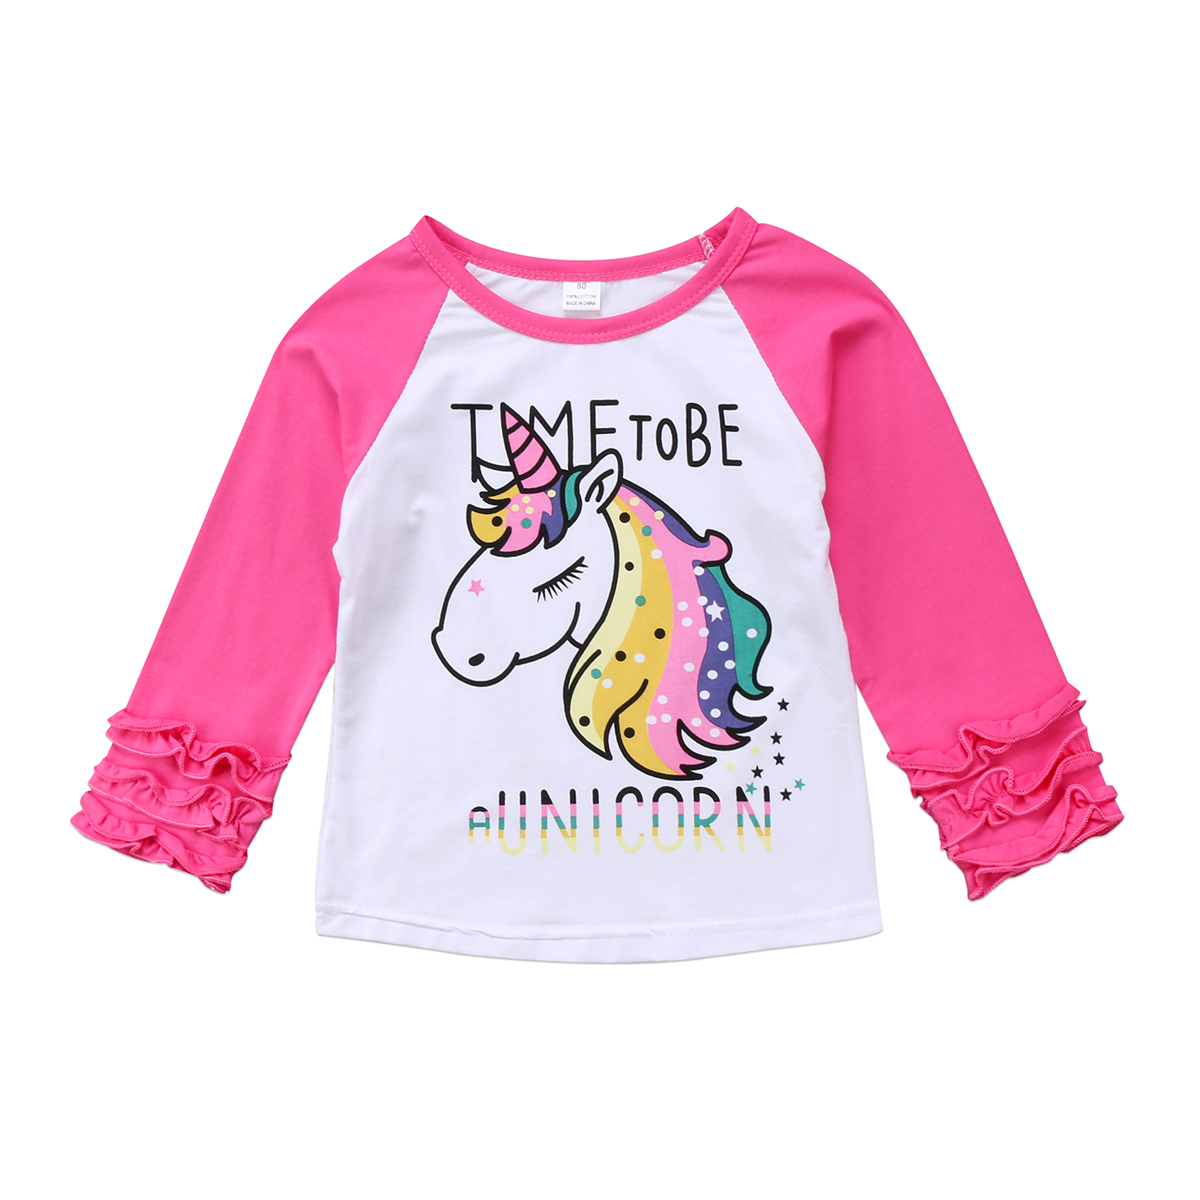 Girls Womans Unicorn Celebrity Girly Princess Tumblr Mermaid Funny T Shirt